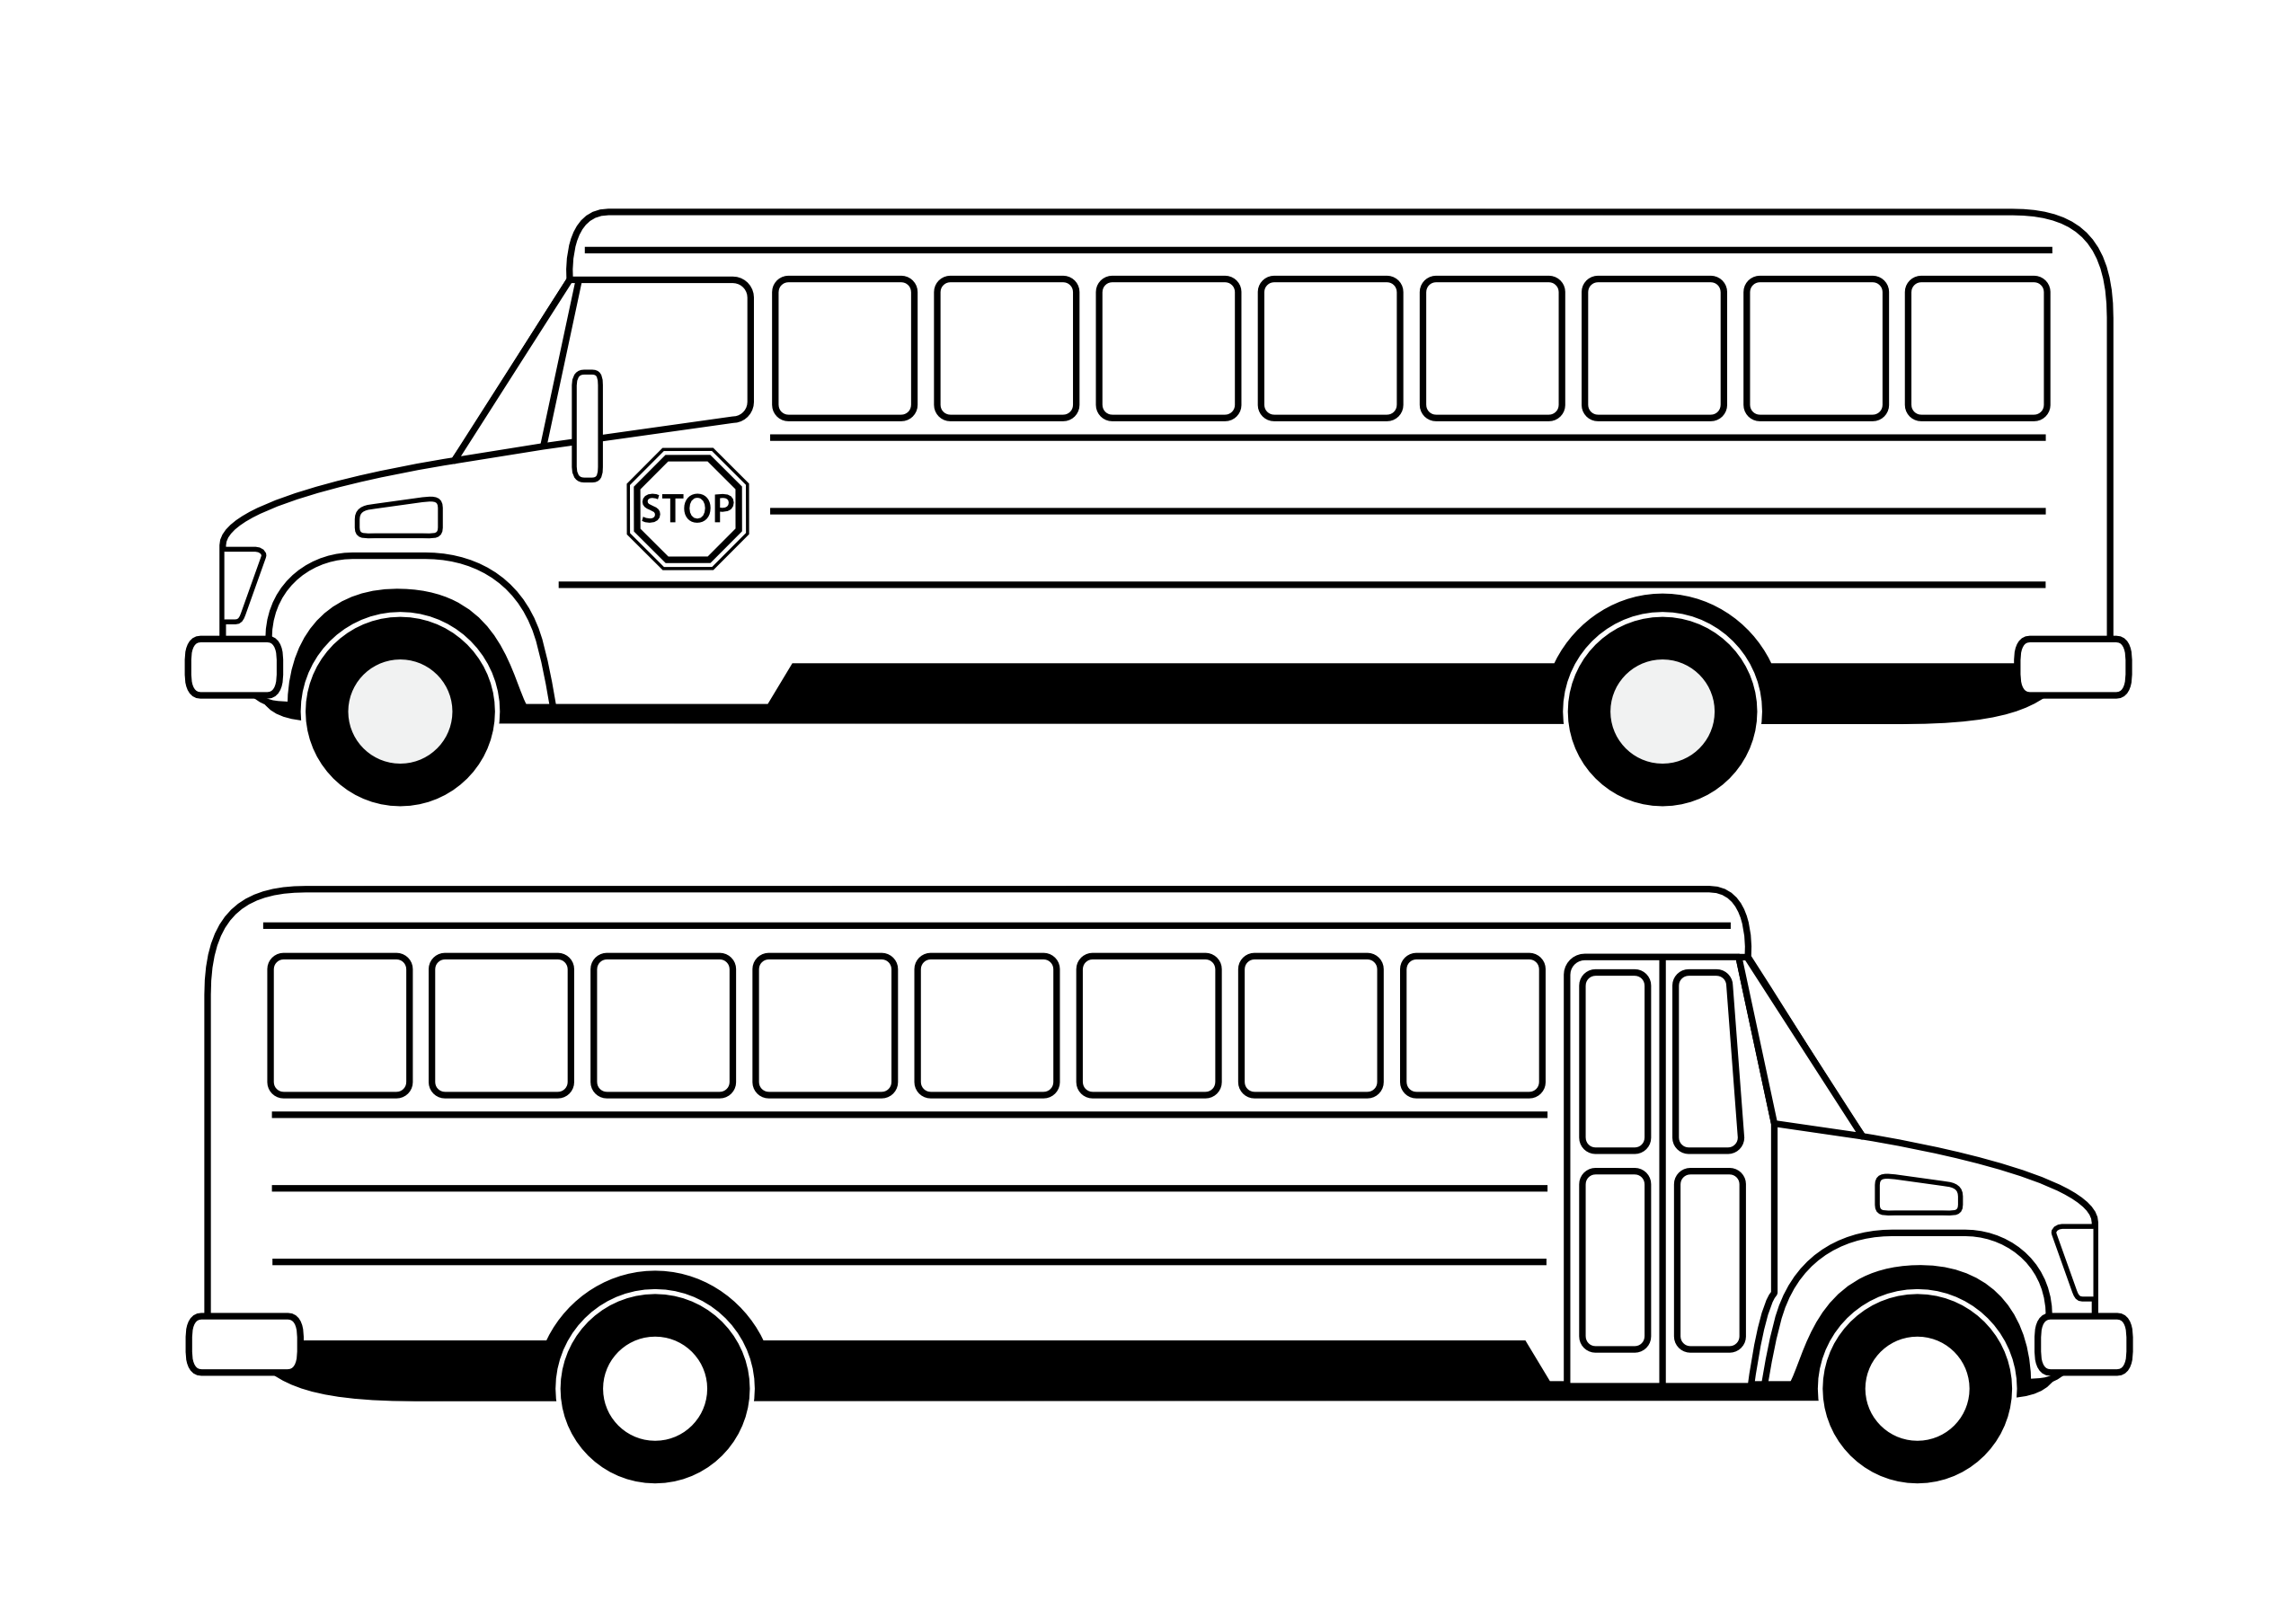 Free School Bus Outline, Download Free Clip Art, Free Clip.